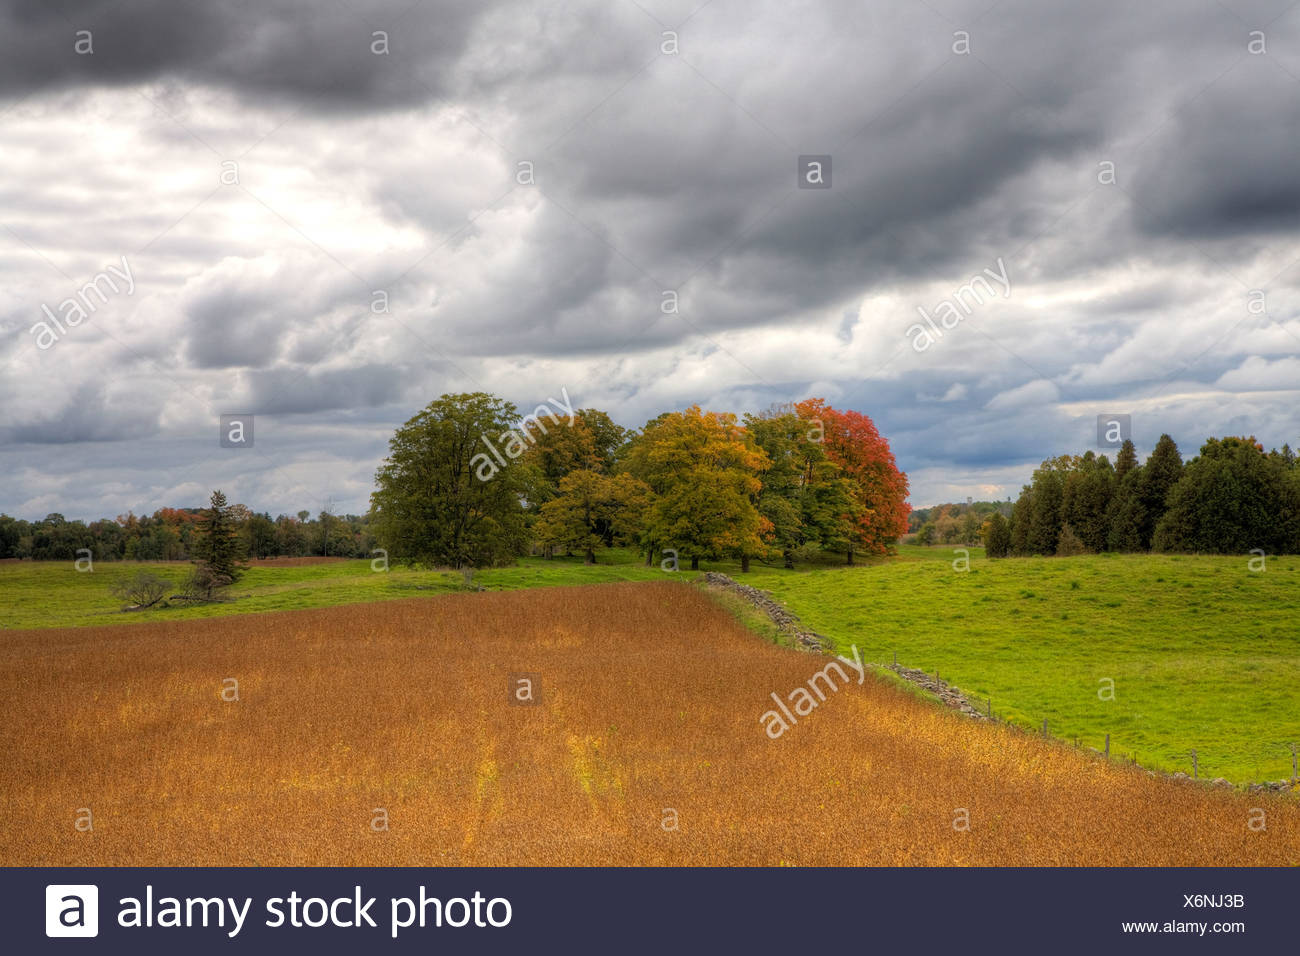 Field in early autumn, Guelph Line, Southwestern Ontario, Canada - Stock Image